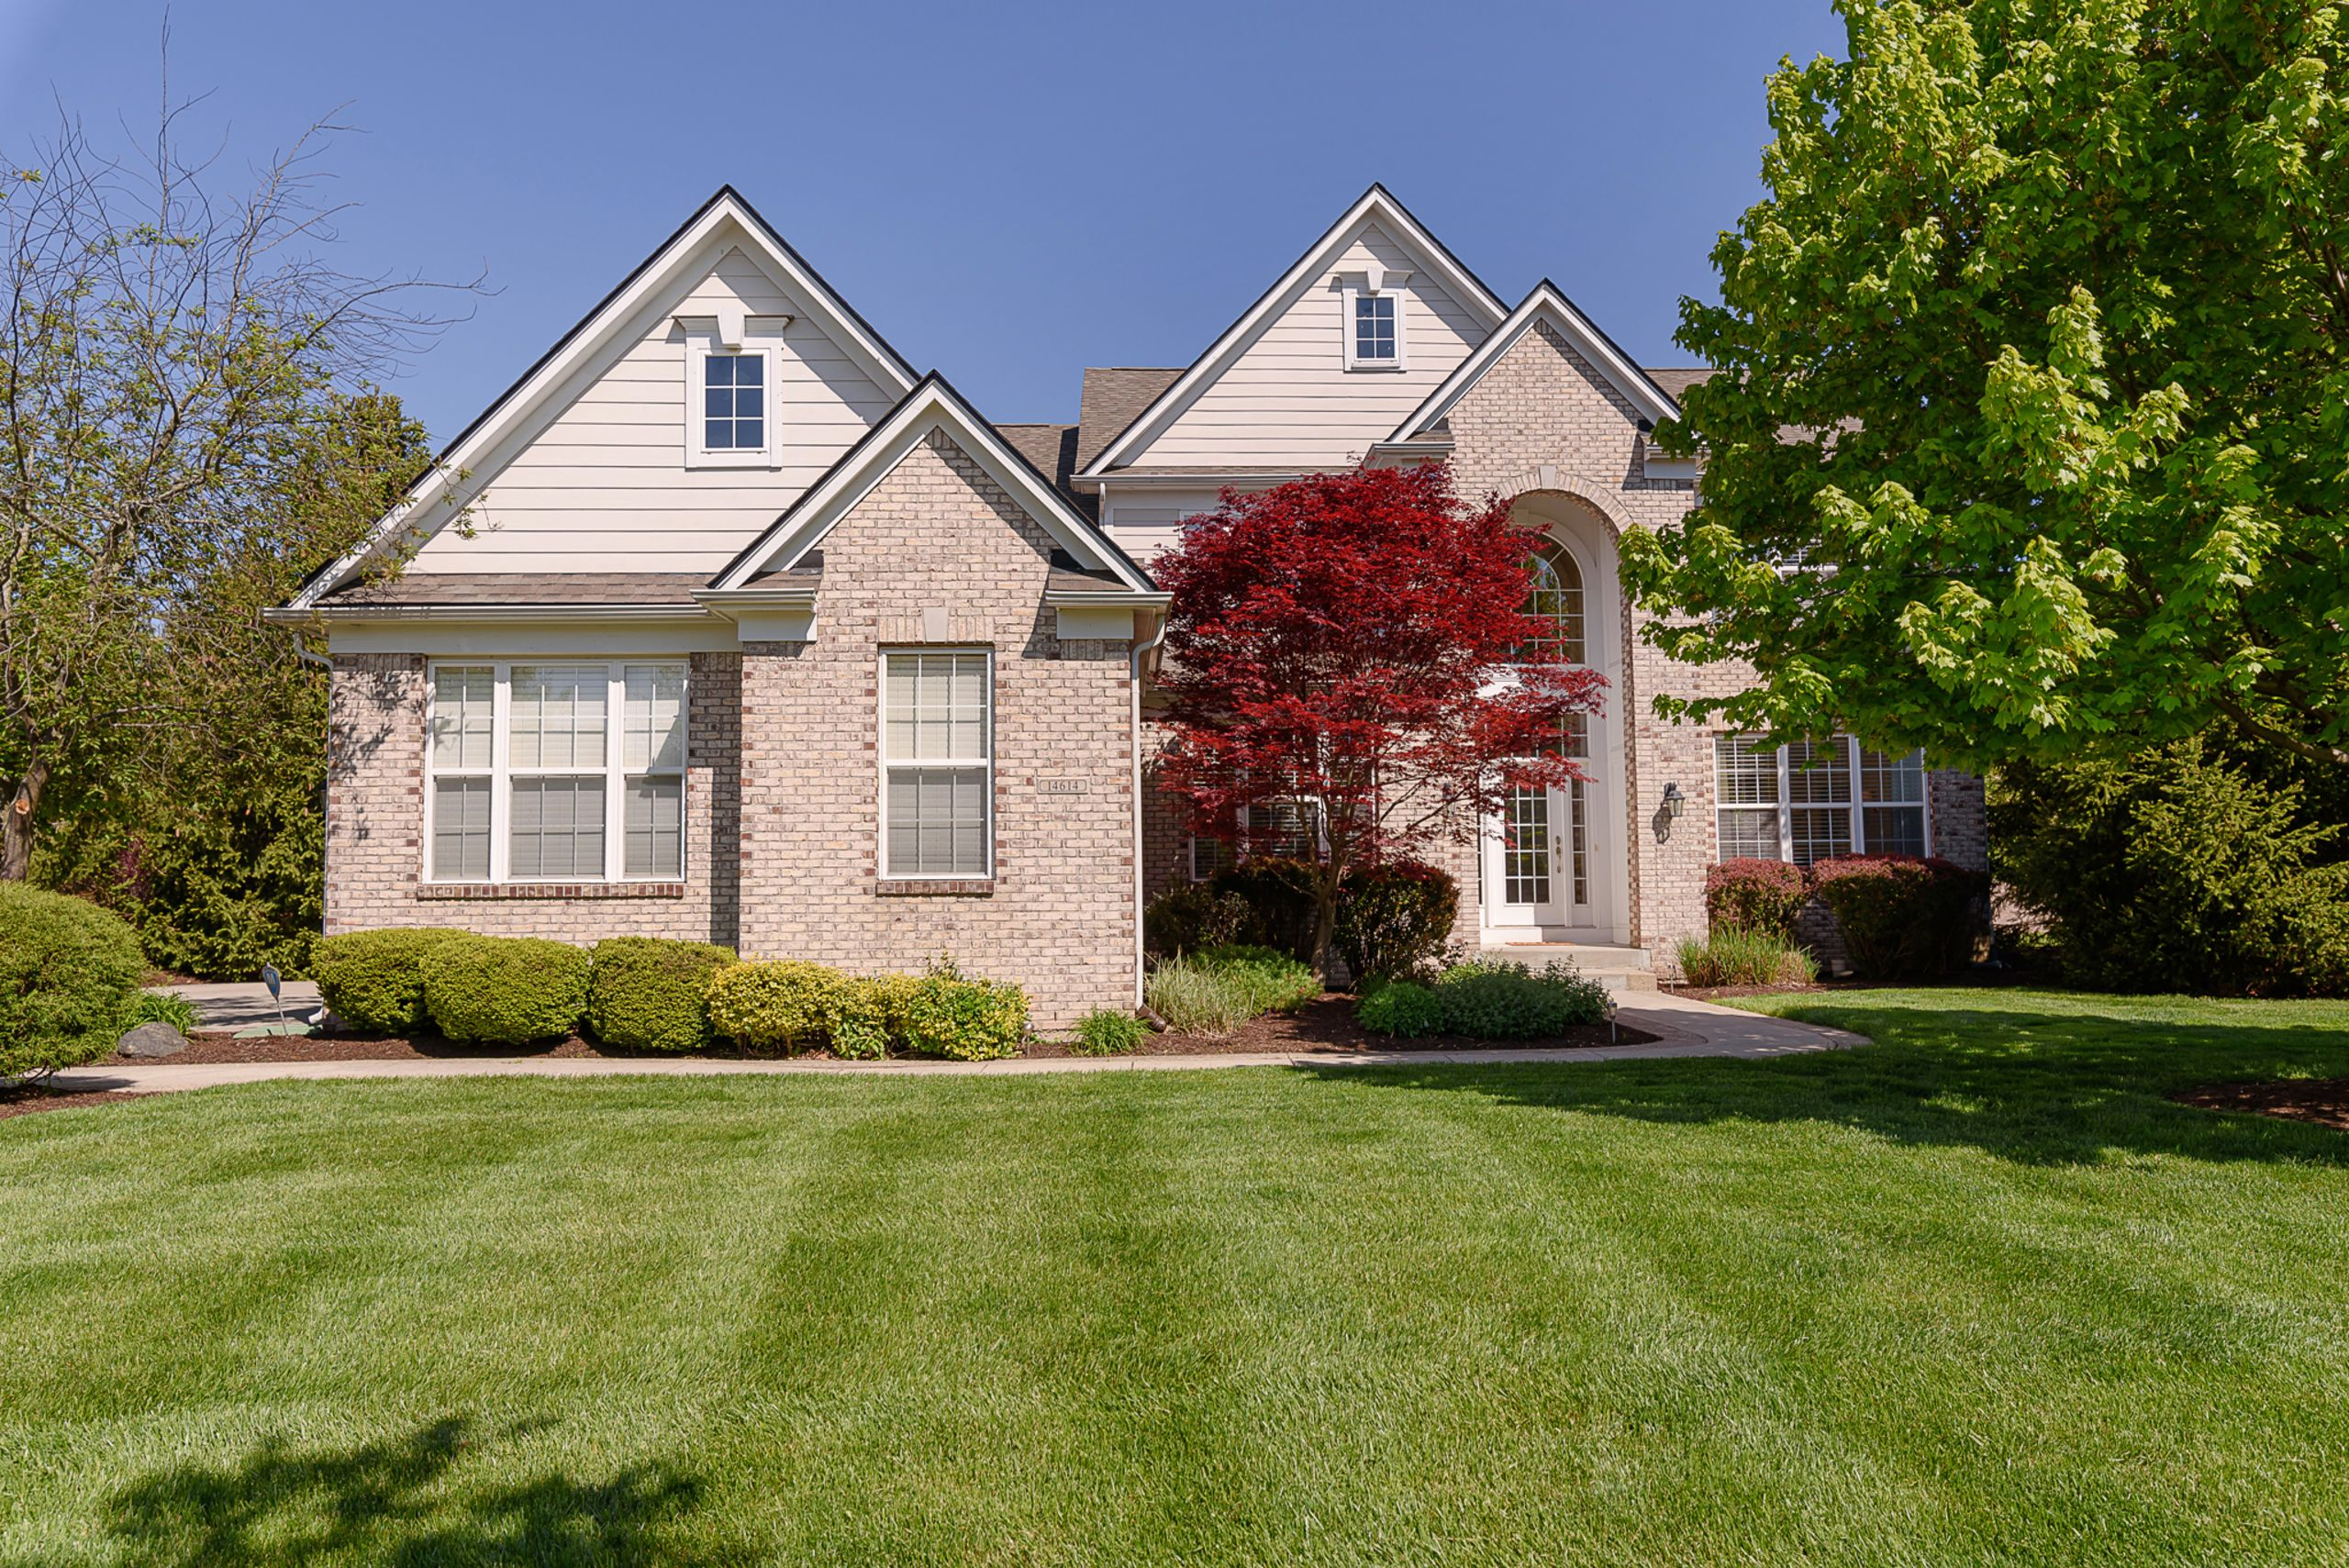 SOLD IN FISHERS $11k OVER LIST PRICE!  (2 DOM, MULTIPLE OFFERS)